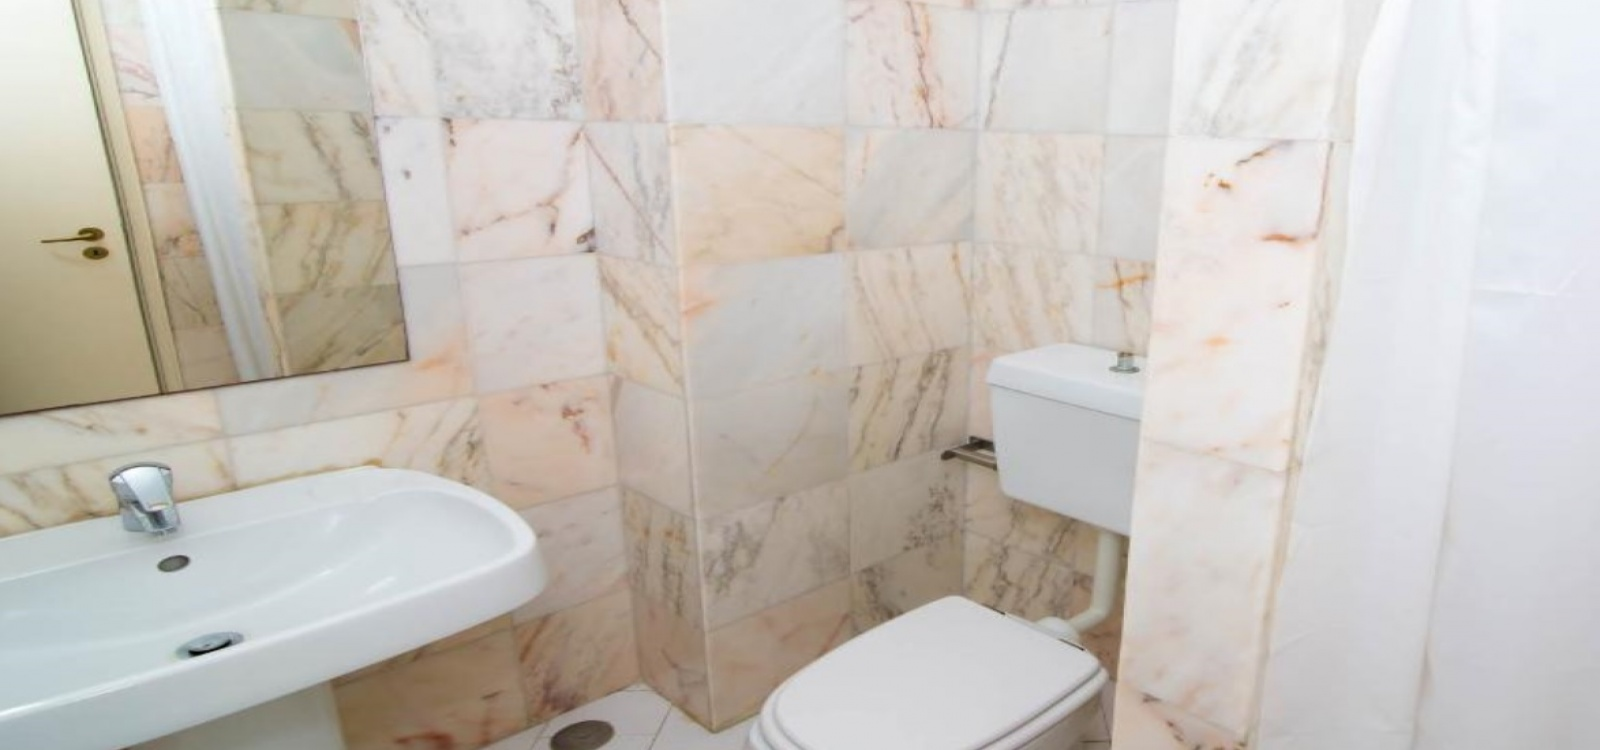 2 Bedrooms, Apartment, Vacation Rental, First Floor, 2 Bathrooms, Listing ID 1012, Albufeira, Portugal,